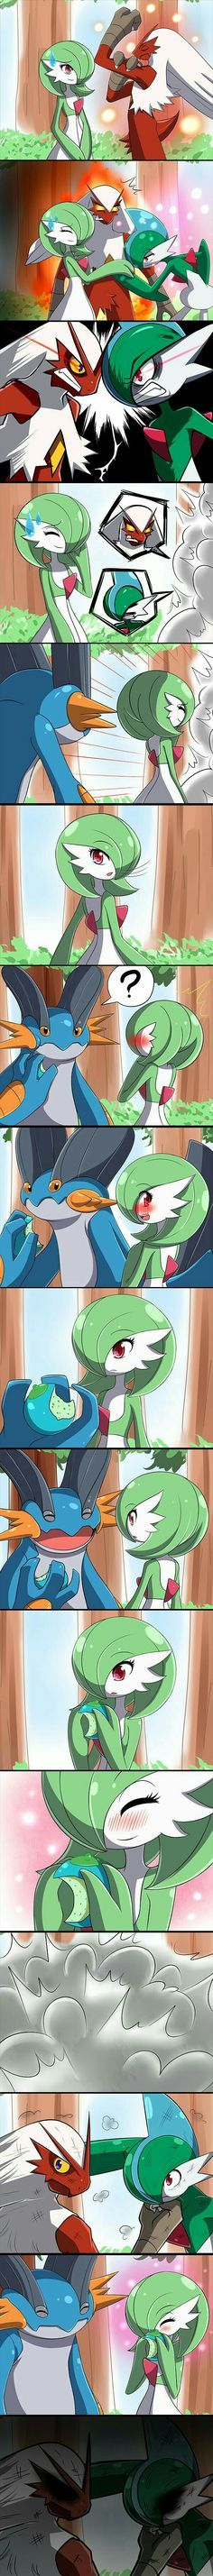 Gardevoir, Gallade, Blaziken, Swampert, funny, comic, fighting.